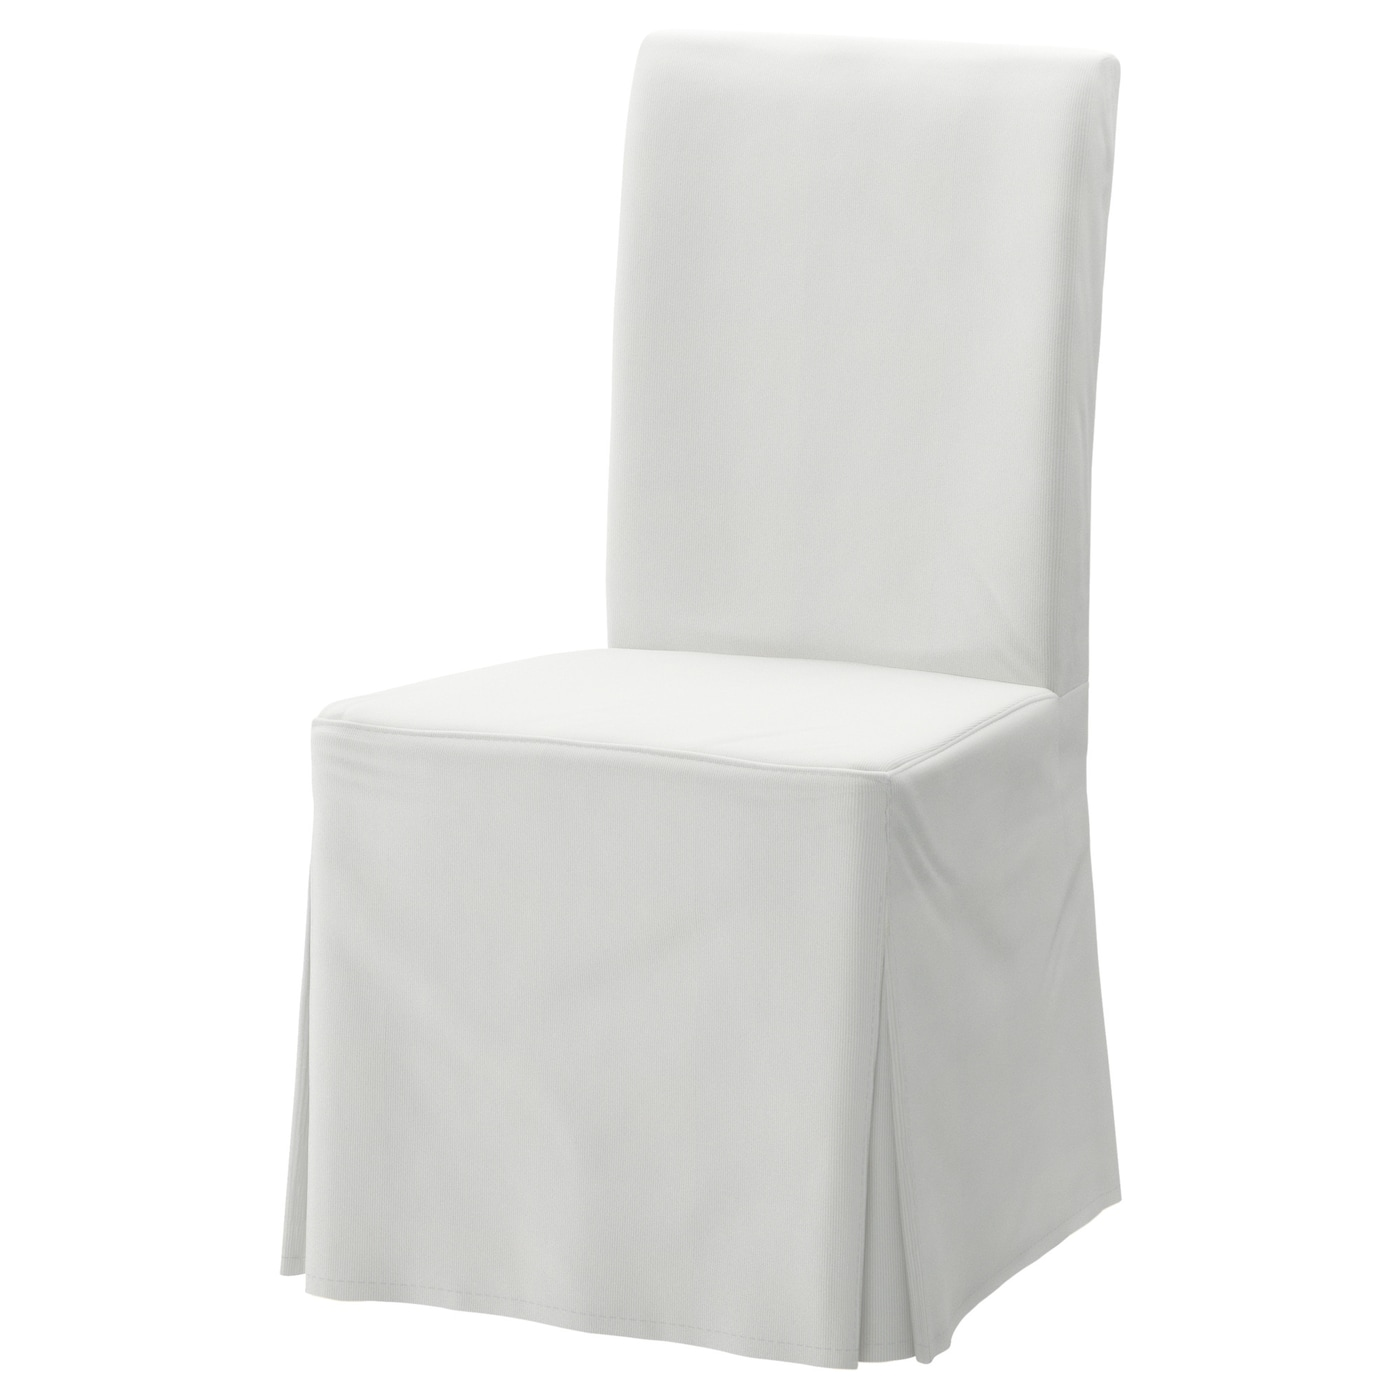 IKEA HENRIKSDAL Chair Cover Long